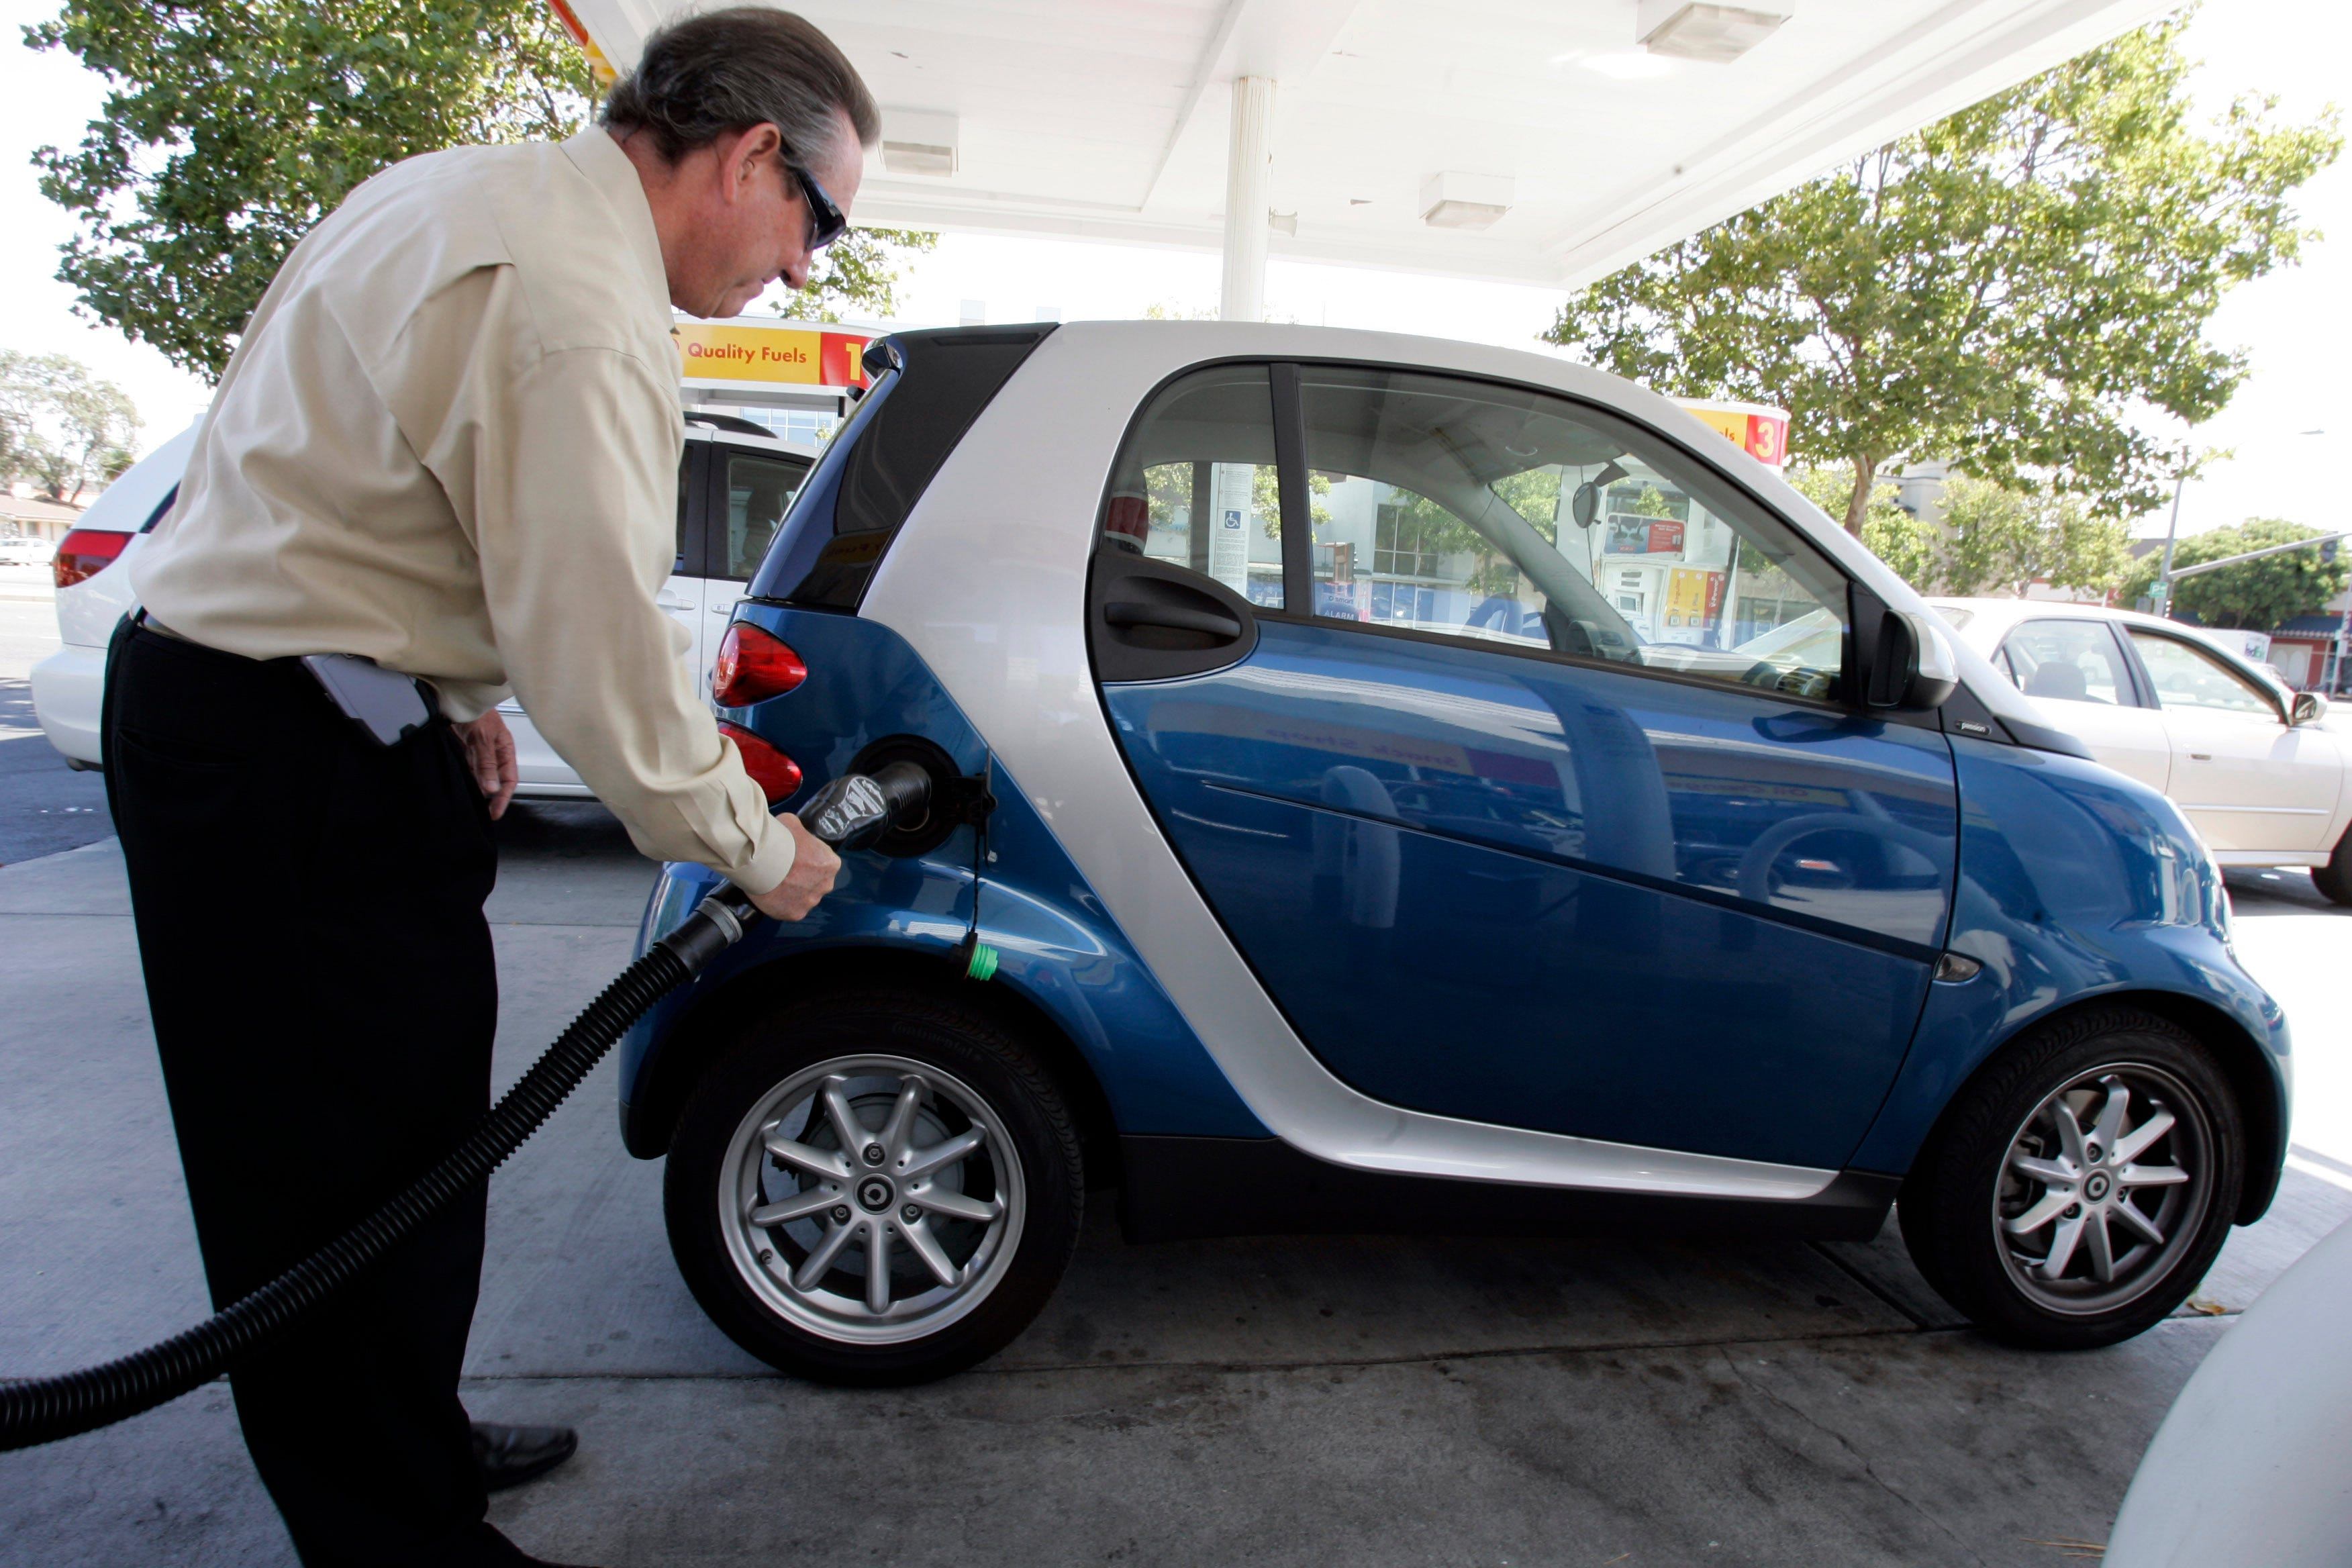 find special offers and deals on new smart cars   smart USA